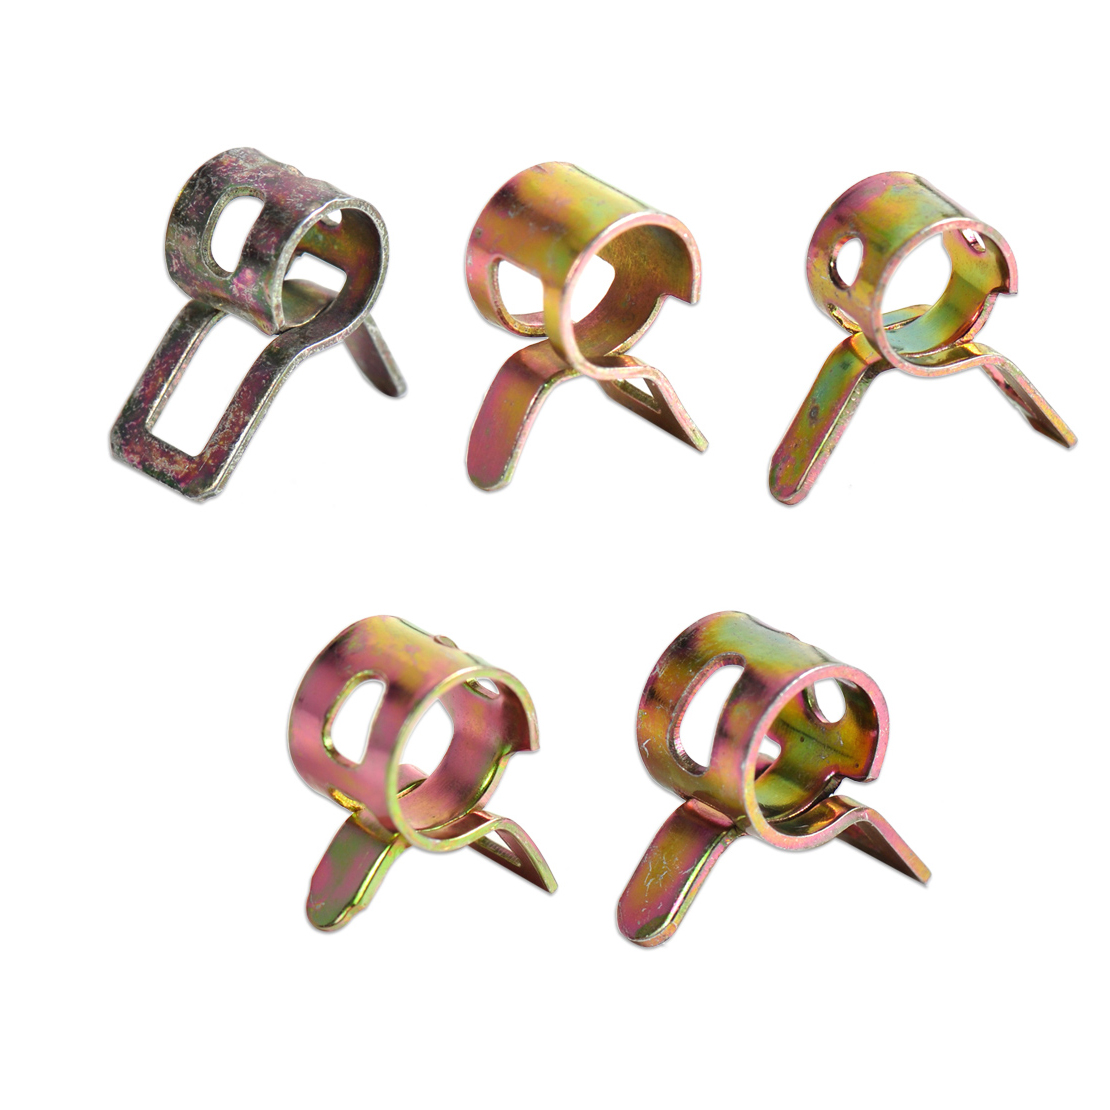 CITALL Motorcycle 50pcs Spring Clip Vacuum Fuel Hose Clip Line Silicone Pipe Tube Band Clamps Fastener for BMW Suzuki Yamaha ATV 3 76mm turbo intercooler pipe3 chrome aluminum piping pipe tube t clamps silicone hoses